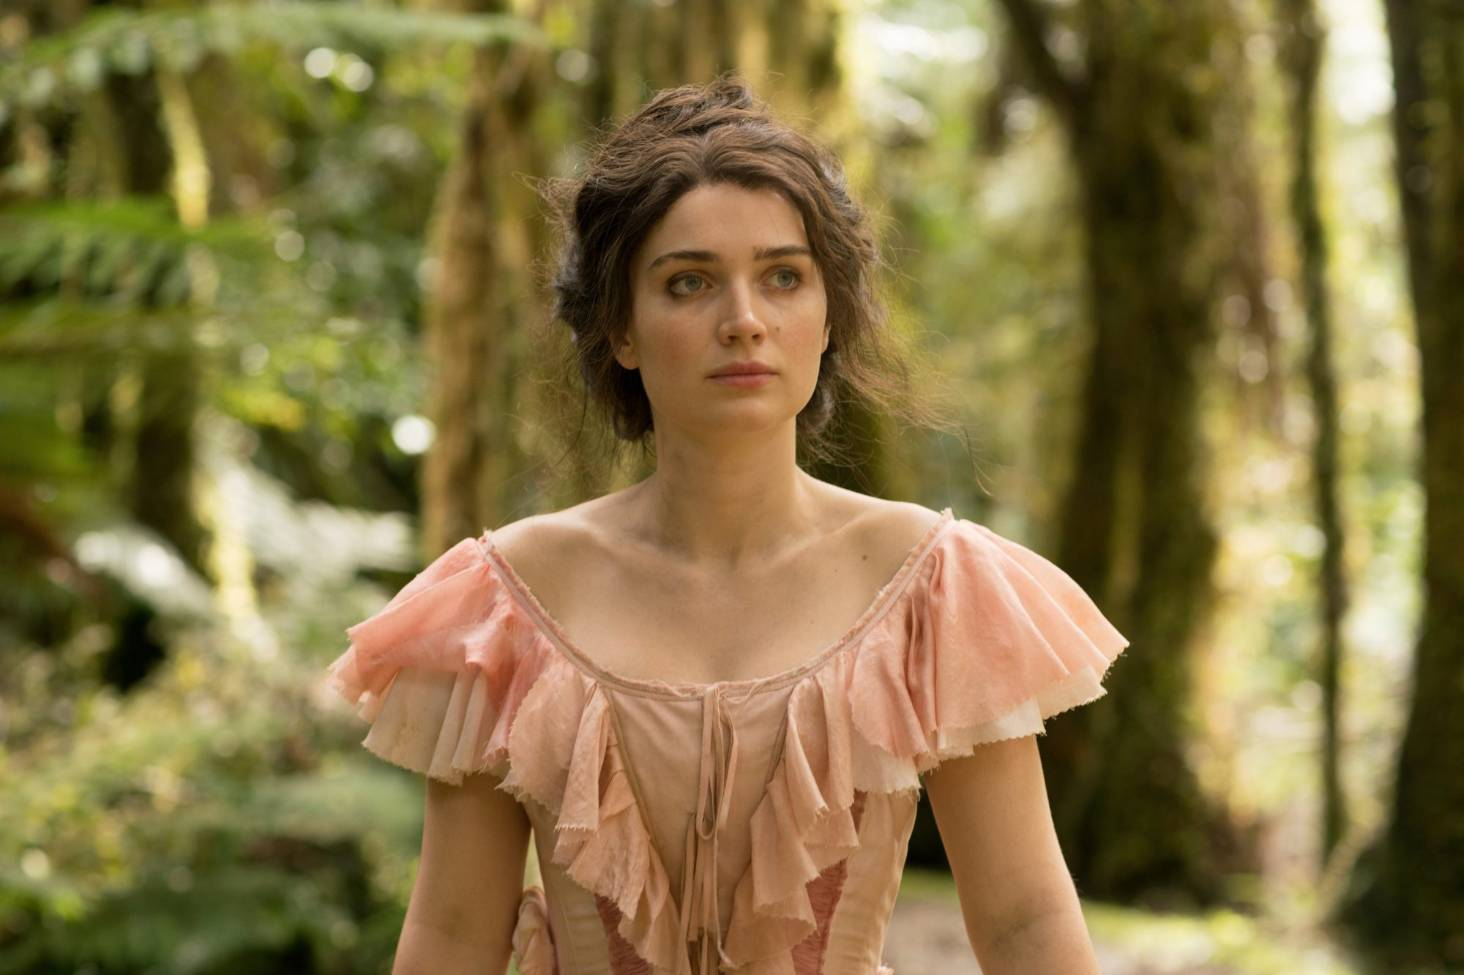 The Luminaries star Eve Hewson on her first time in New Zealand |  Stuff.co.nz